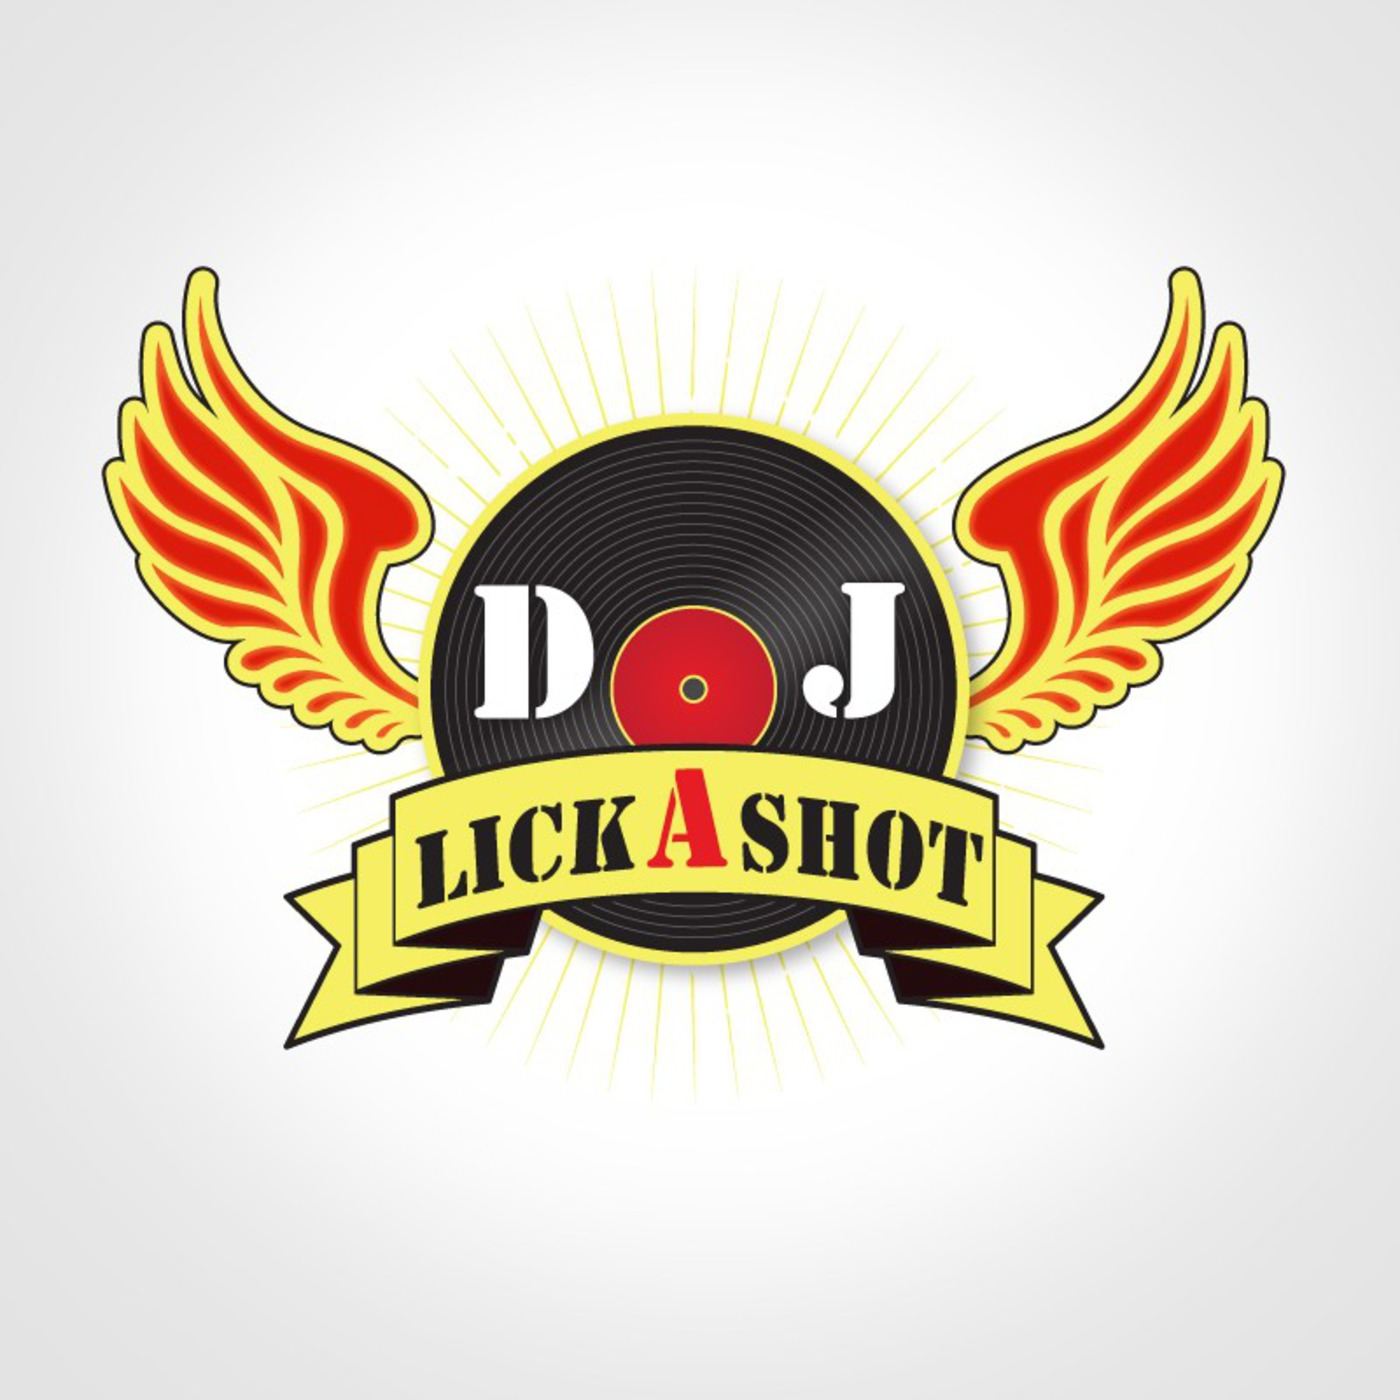 DJ LickAshot Presents... Podcast